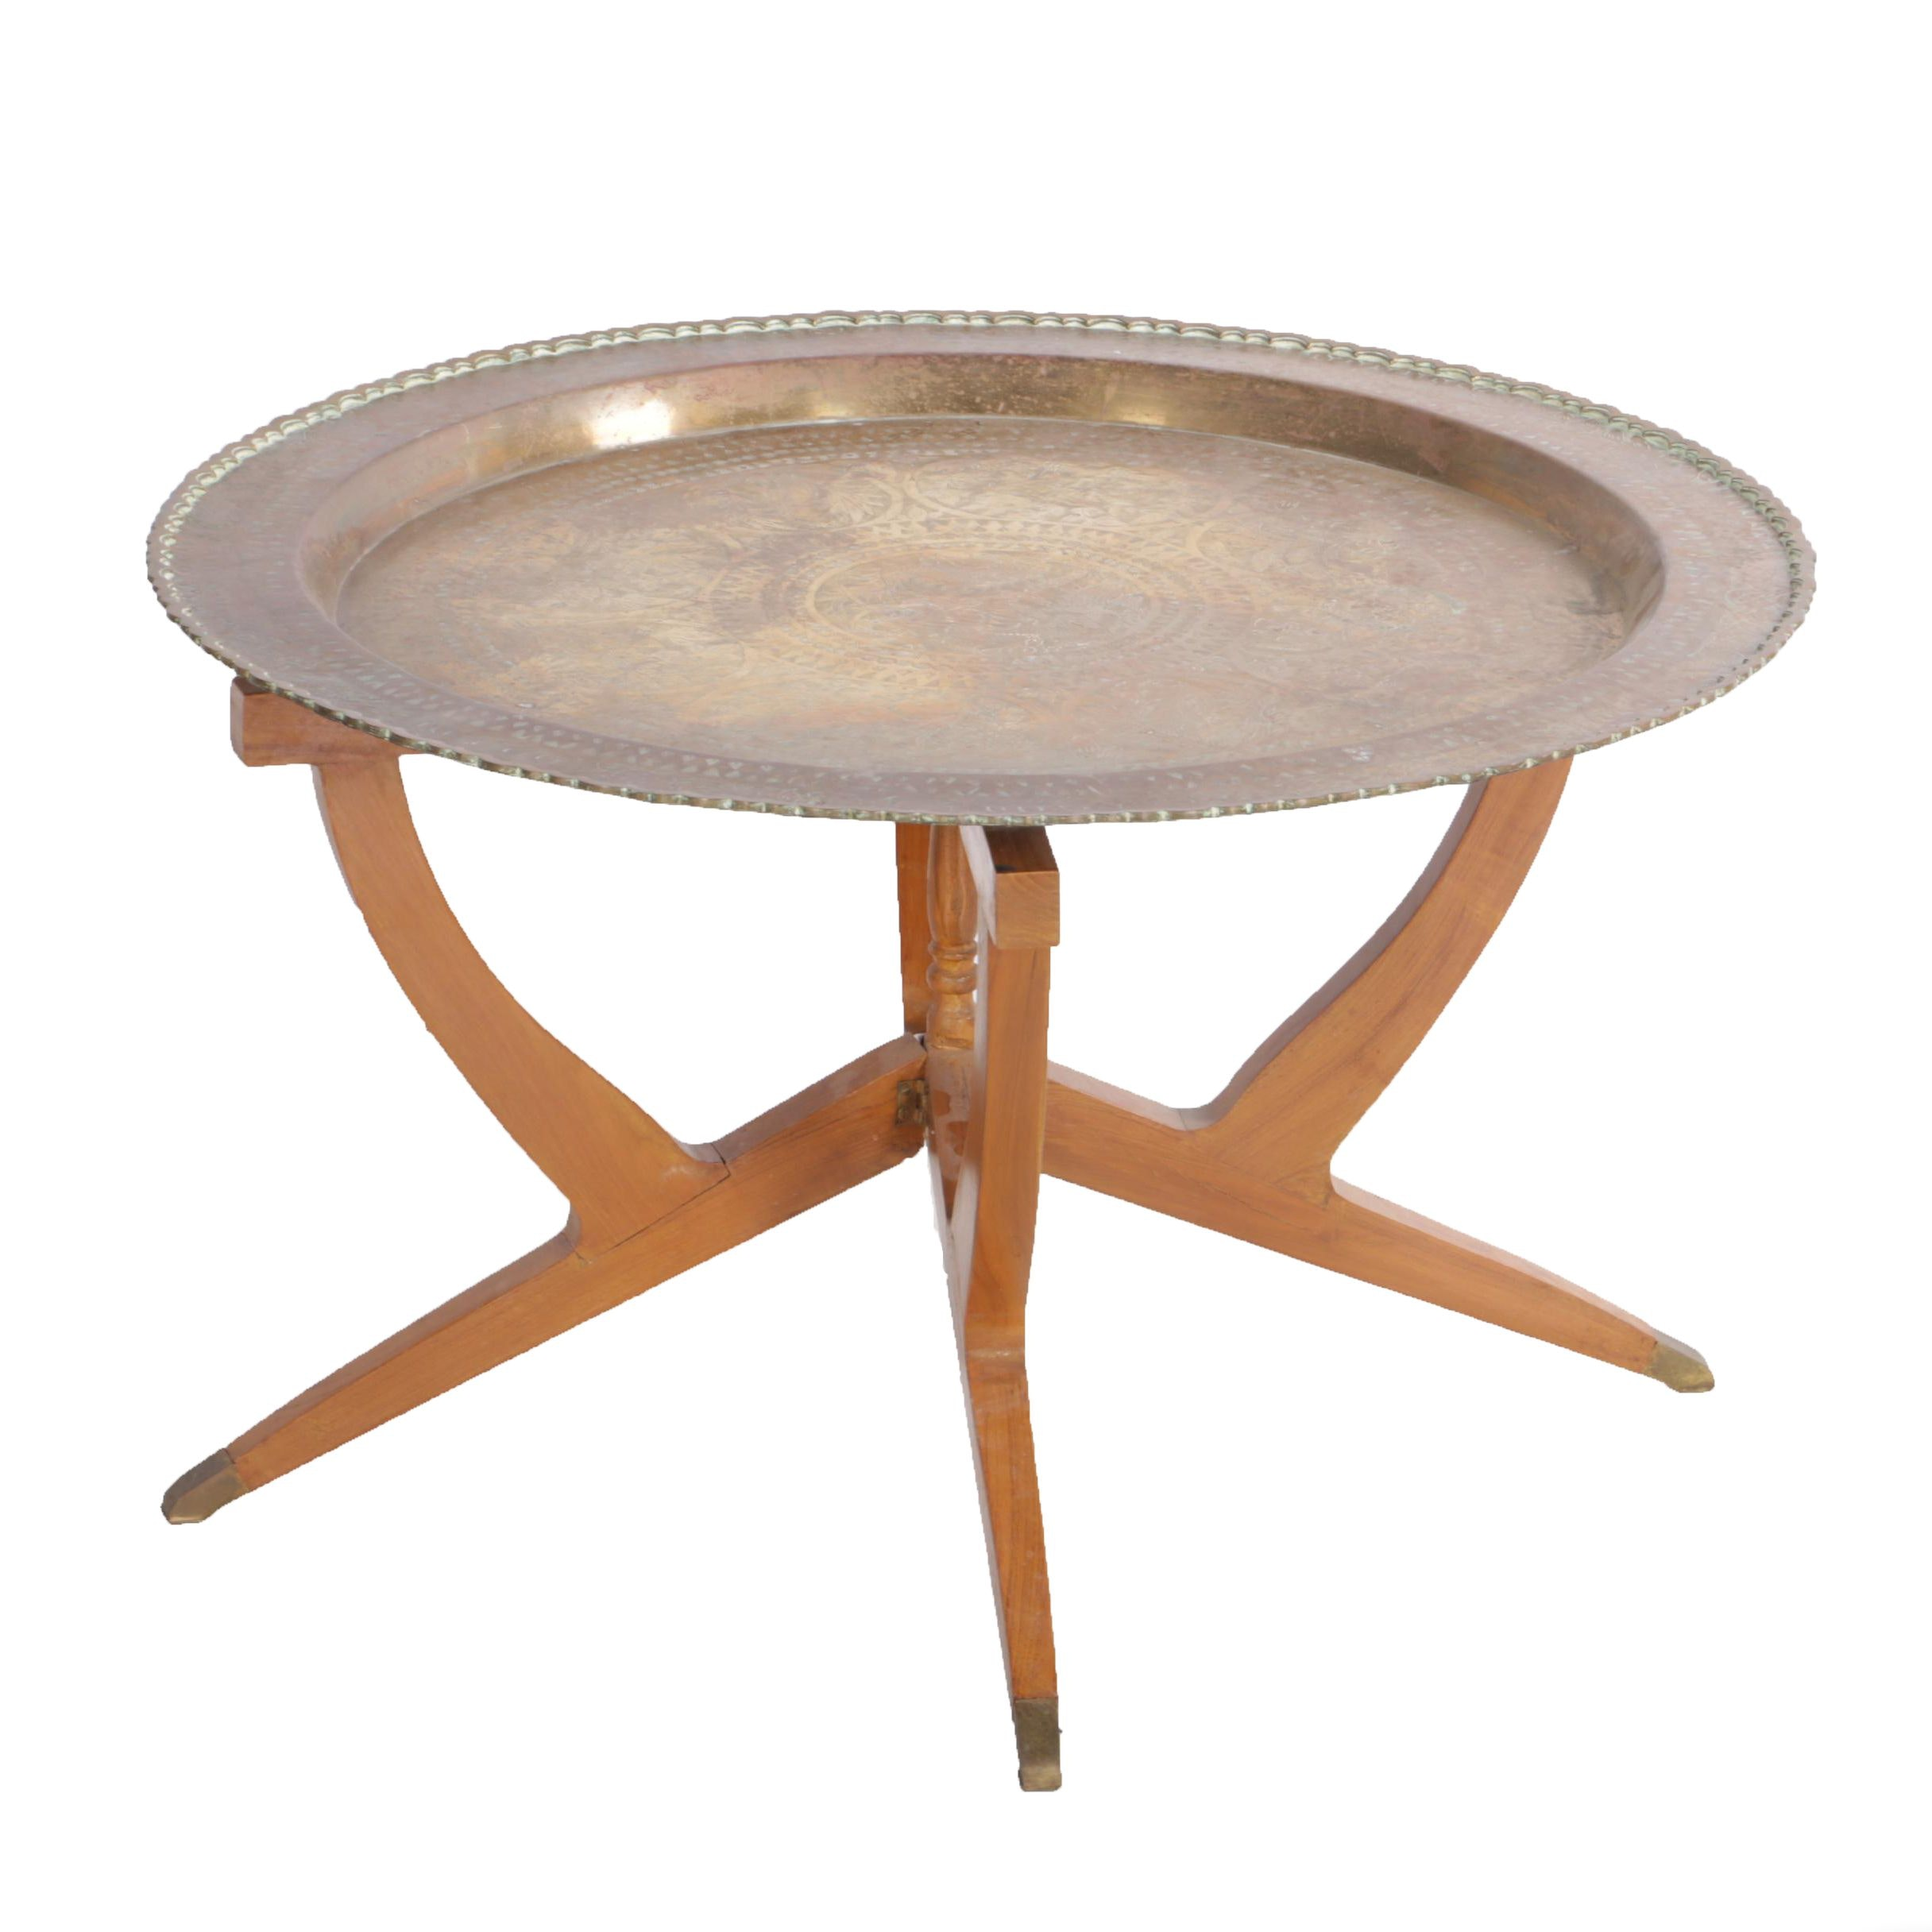 Vintage Brass Tray Table on Folding Wooden Stand